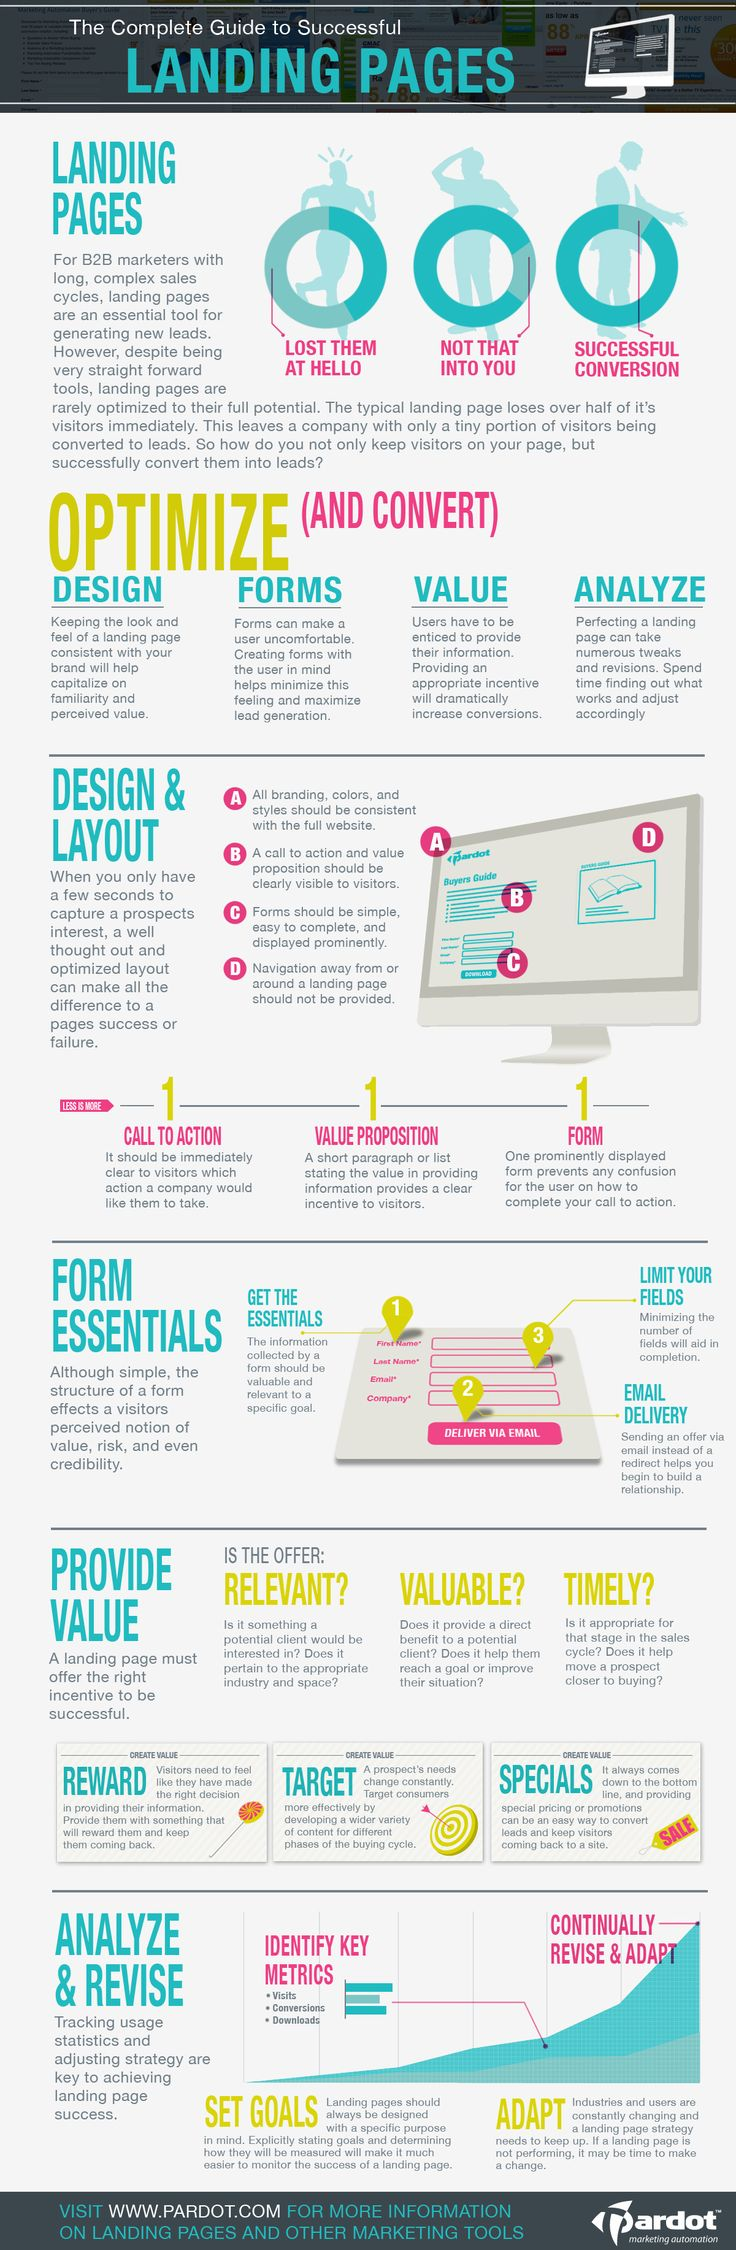 How To Make A Great Landing Page For Your Business Website #Infographic #infografía